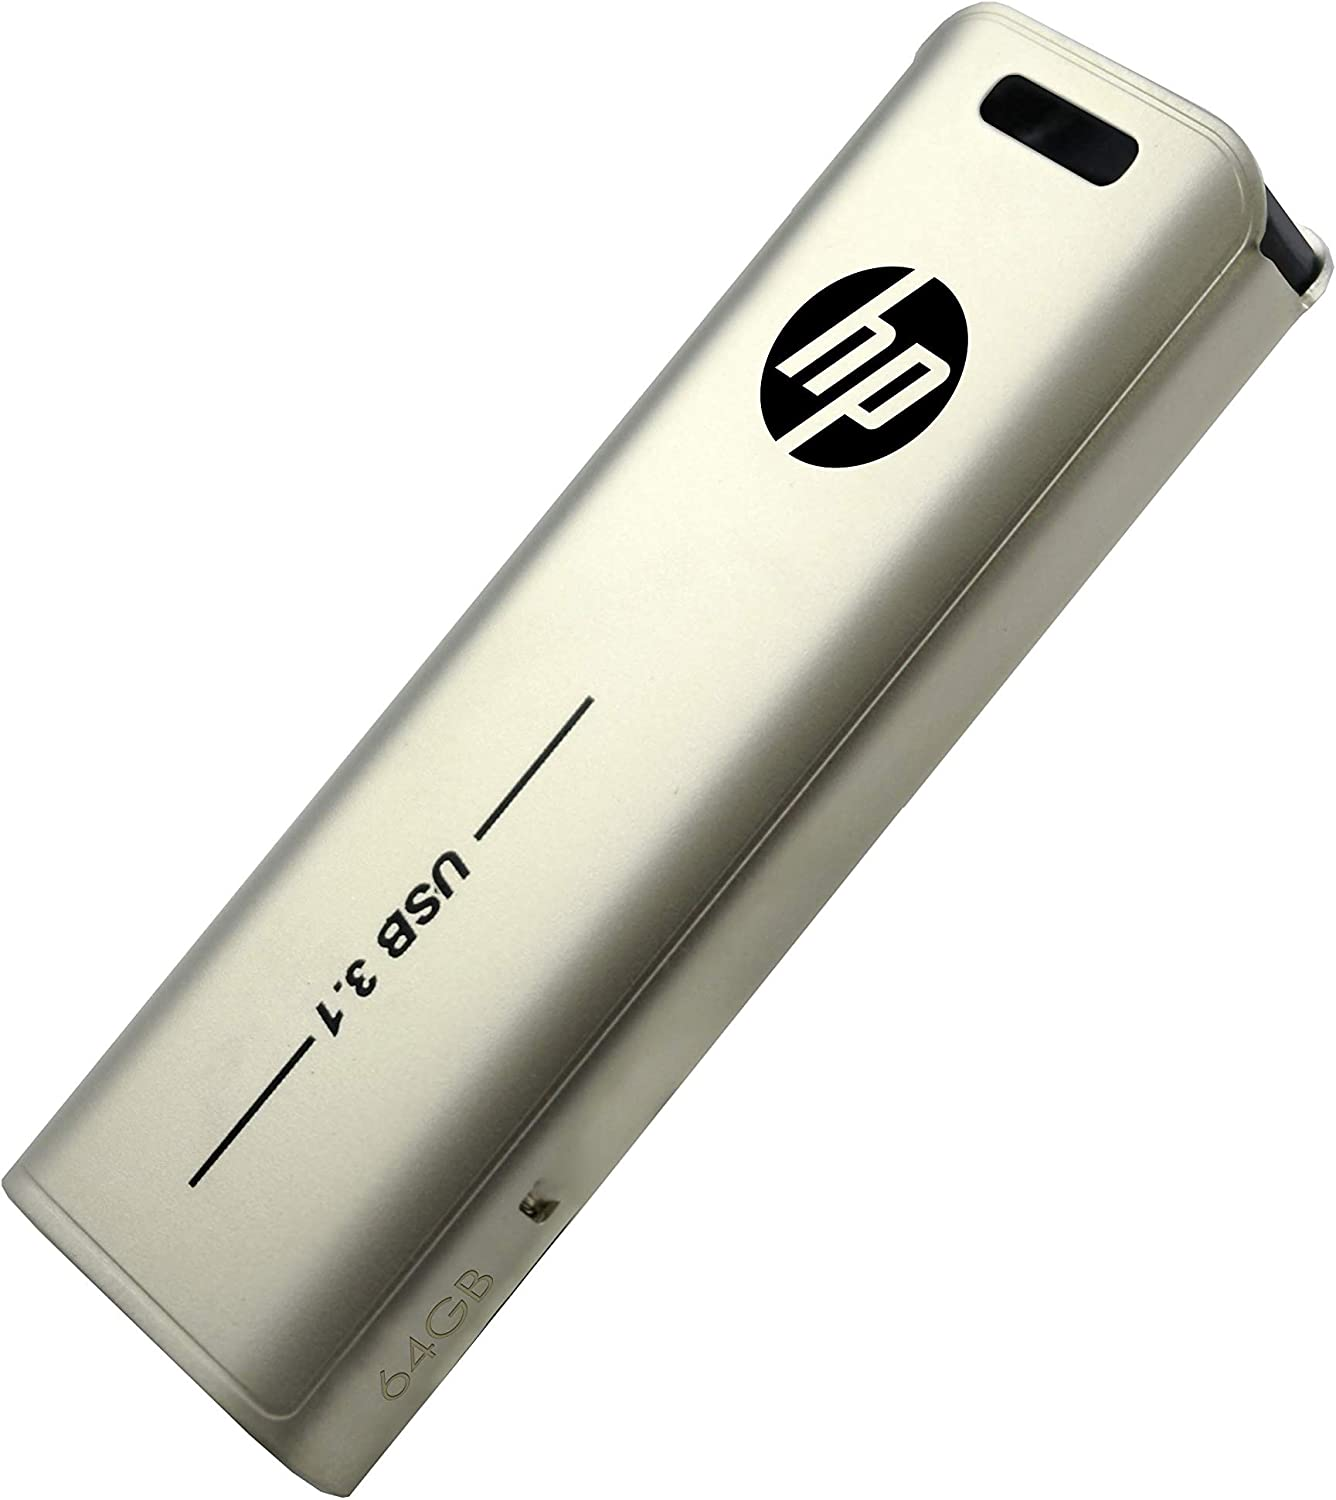 HP USB 3.1 64GB USB Flash Drive X796